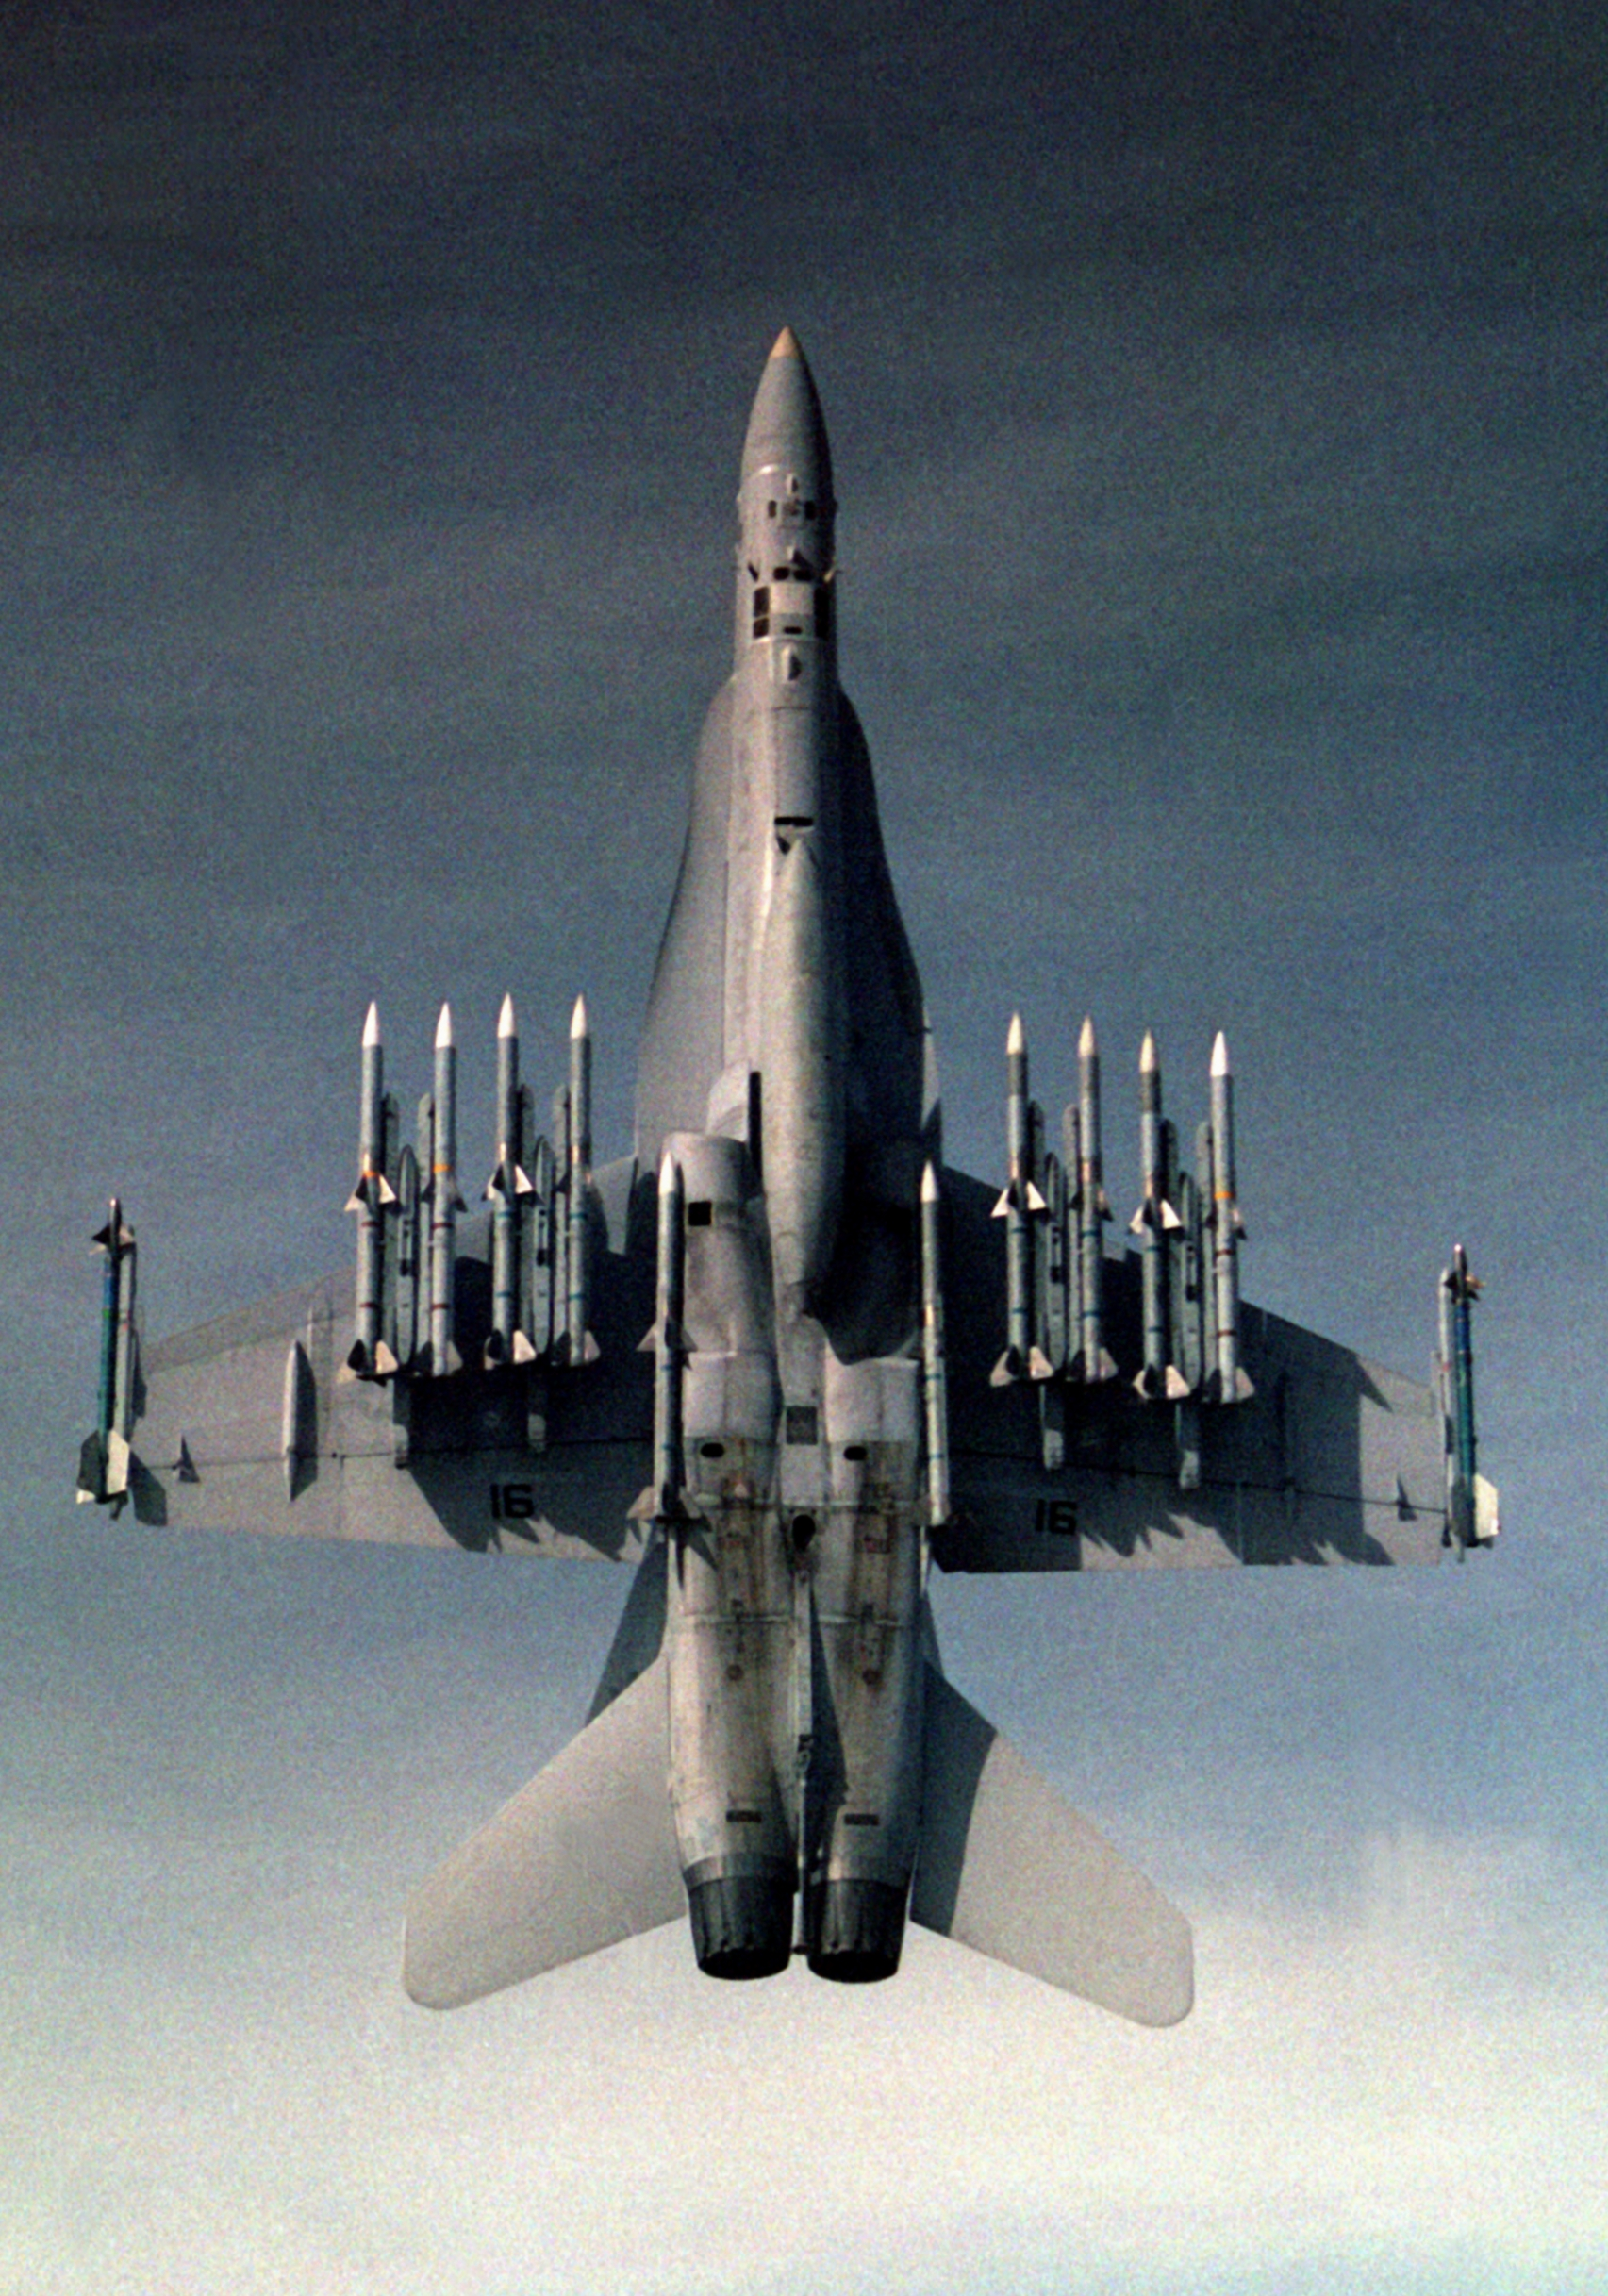 http://upload.wikimedia.org/wikipedia/commons/0/0e/F-18C_of_VX-4_with_8_AIM-120_missiles_in_1992.JPEG